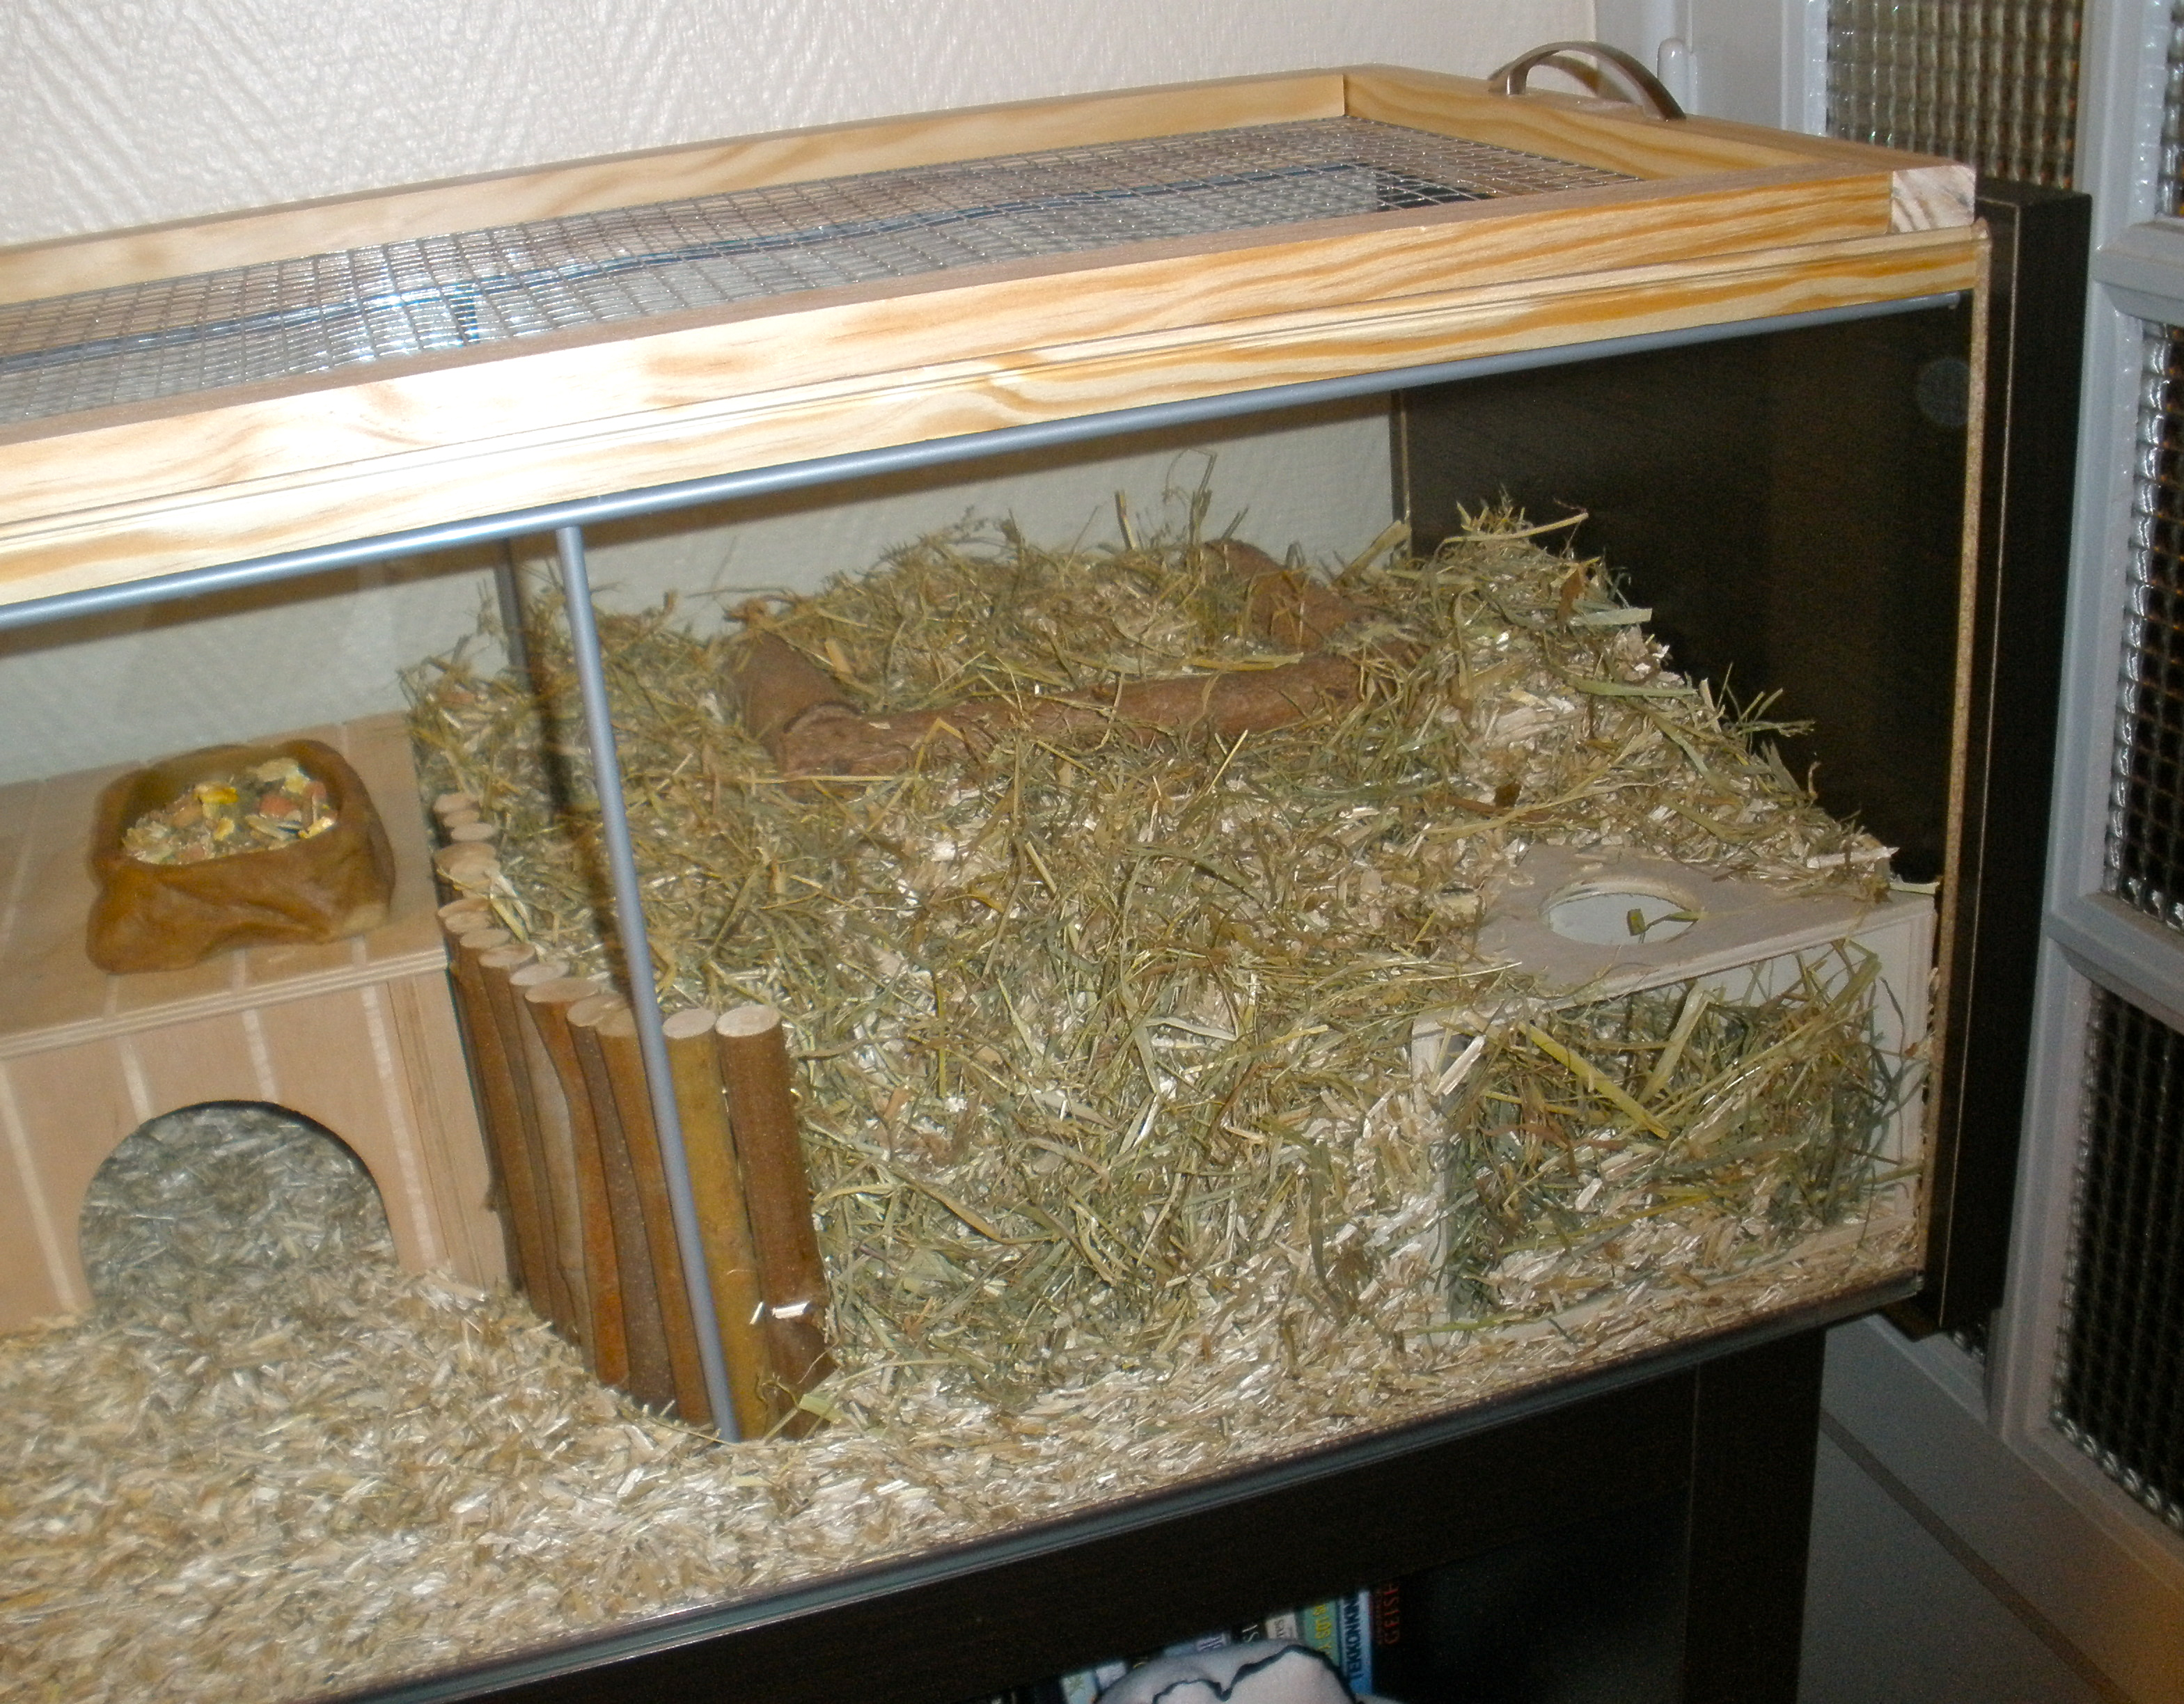 The digging area, Accessories, Modern, Terrarium, Tank, HQ Photo